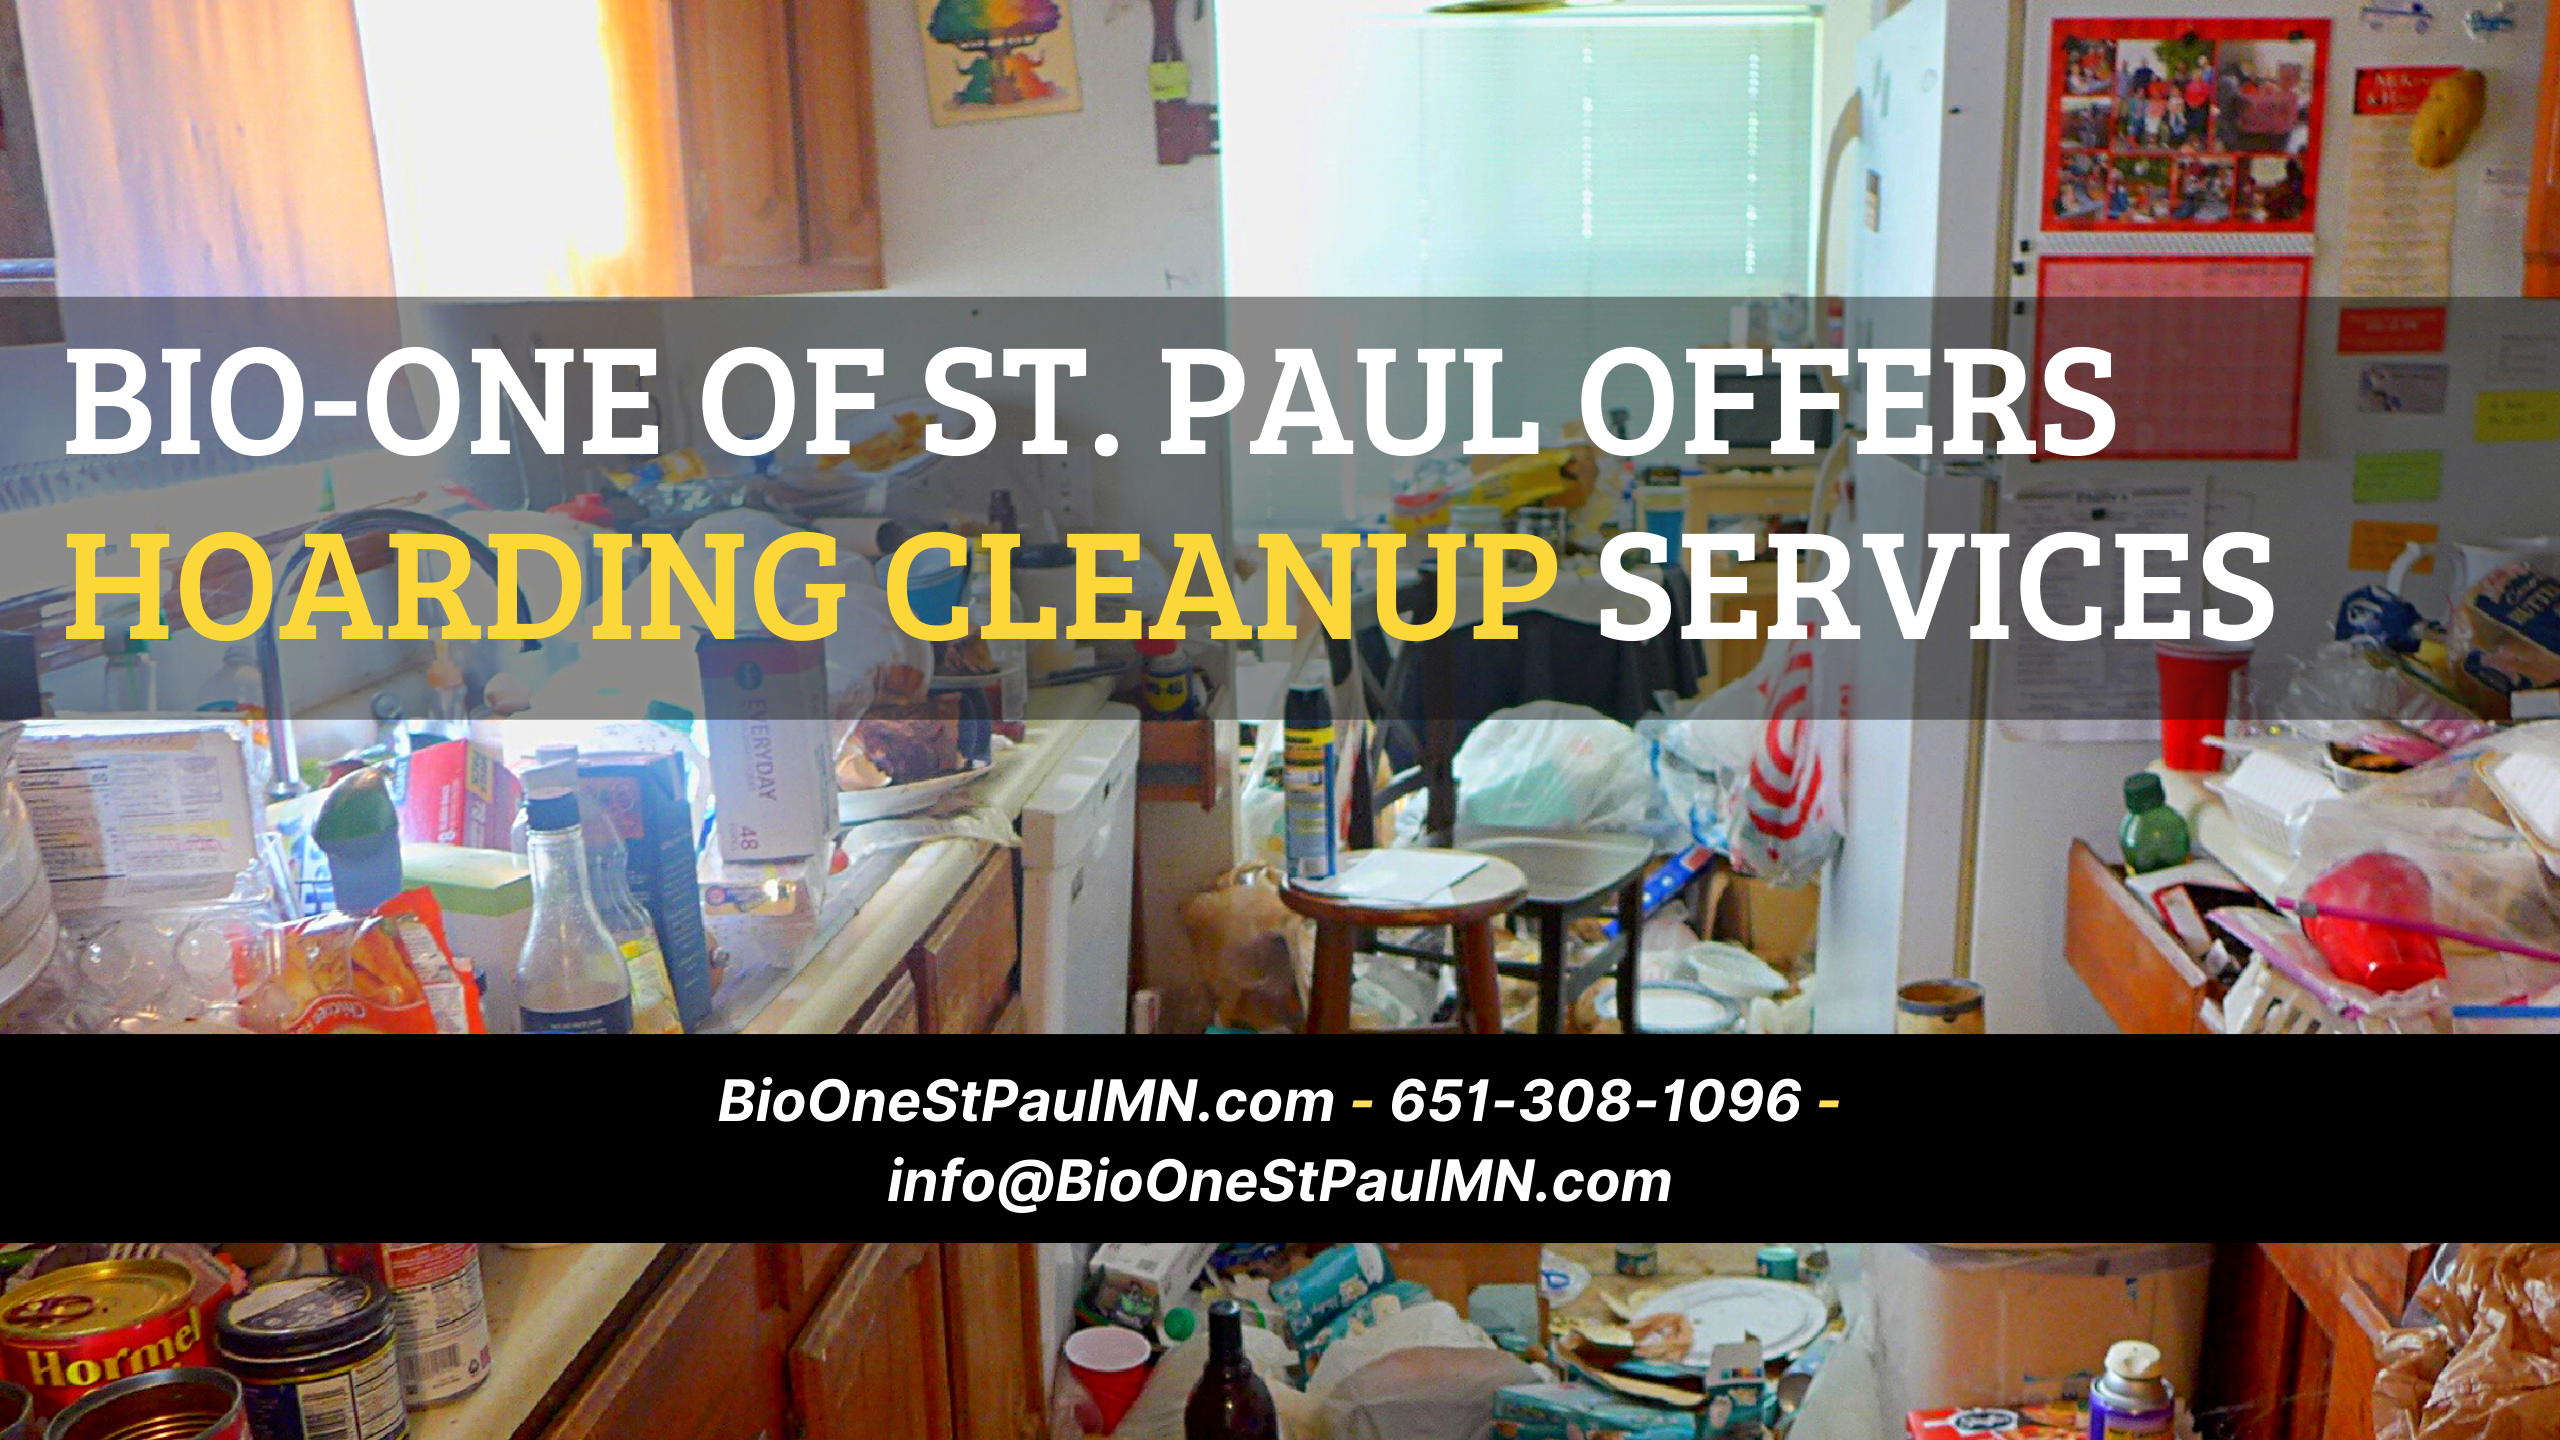 Bio-One of St. Paul offers Hoarding cleanup services - Available 24/7!